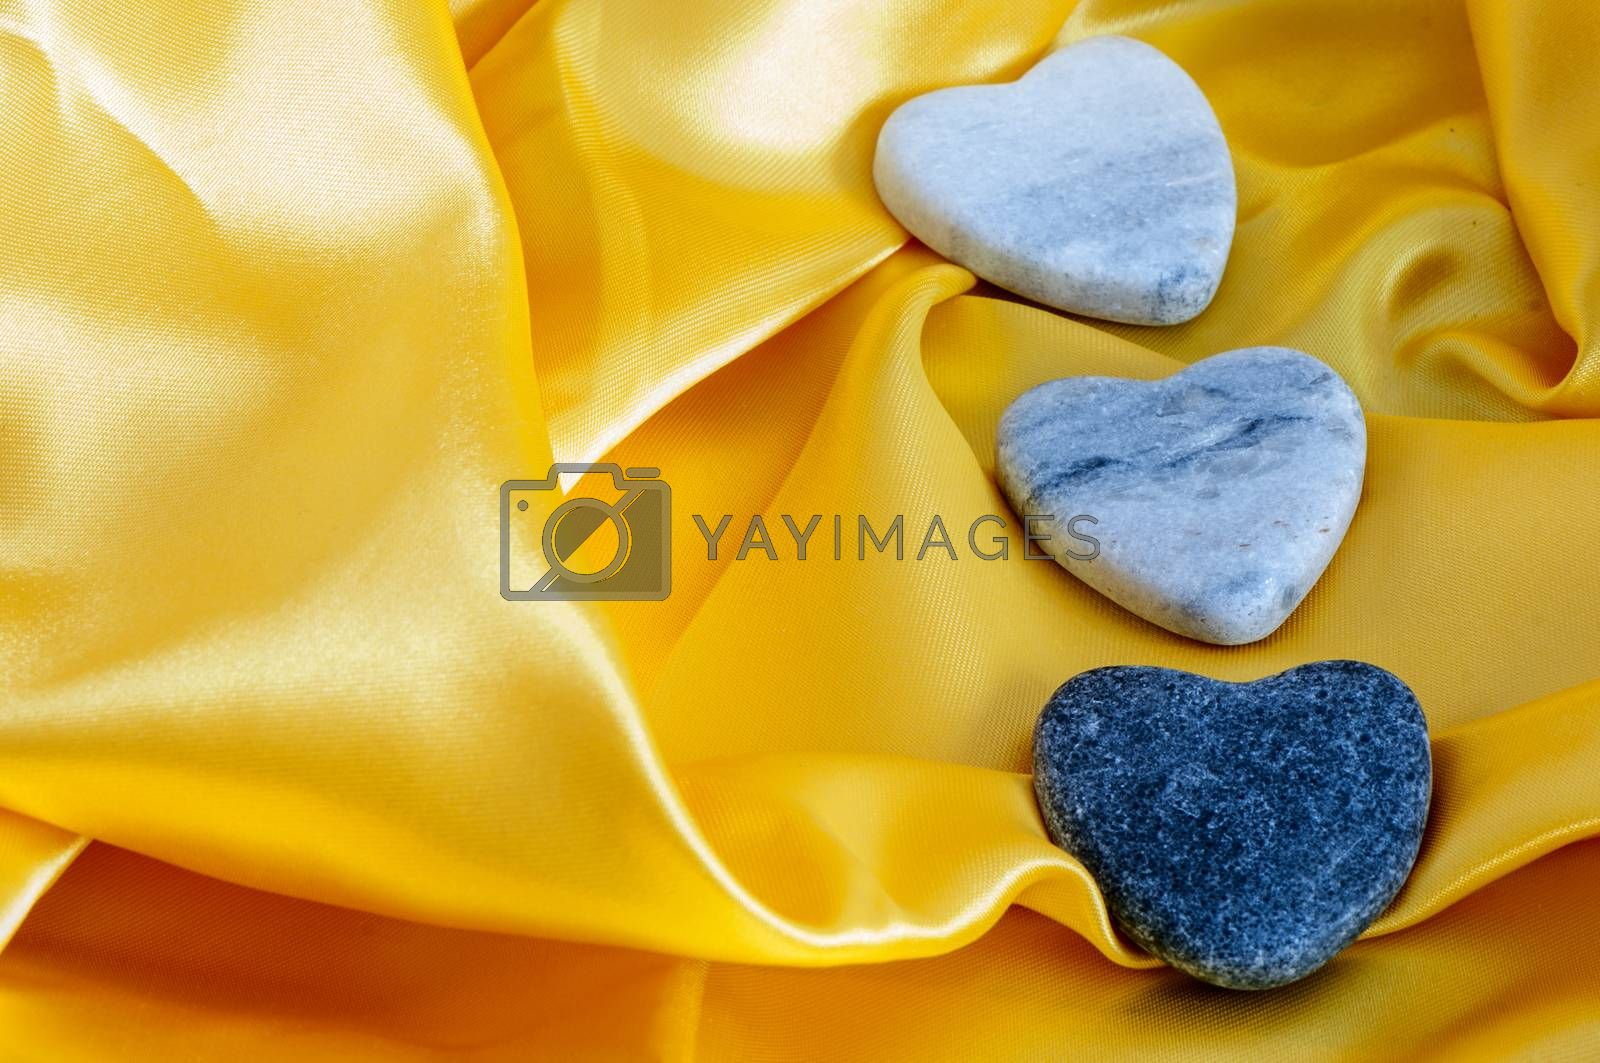 Royalty free image of three stone hearts by carla720